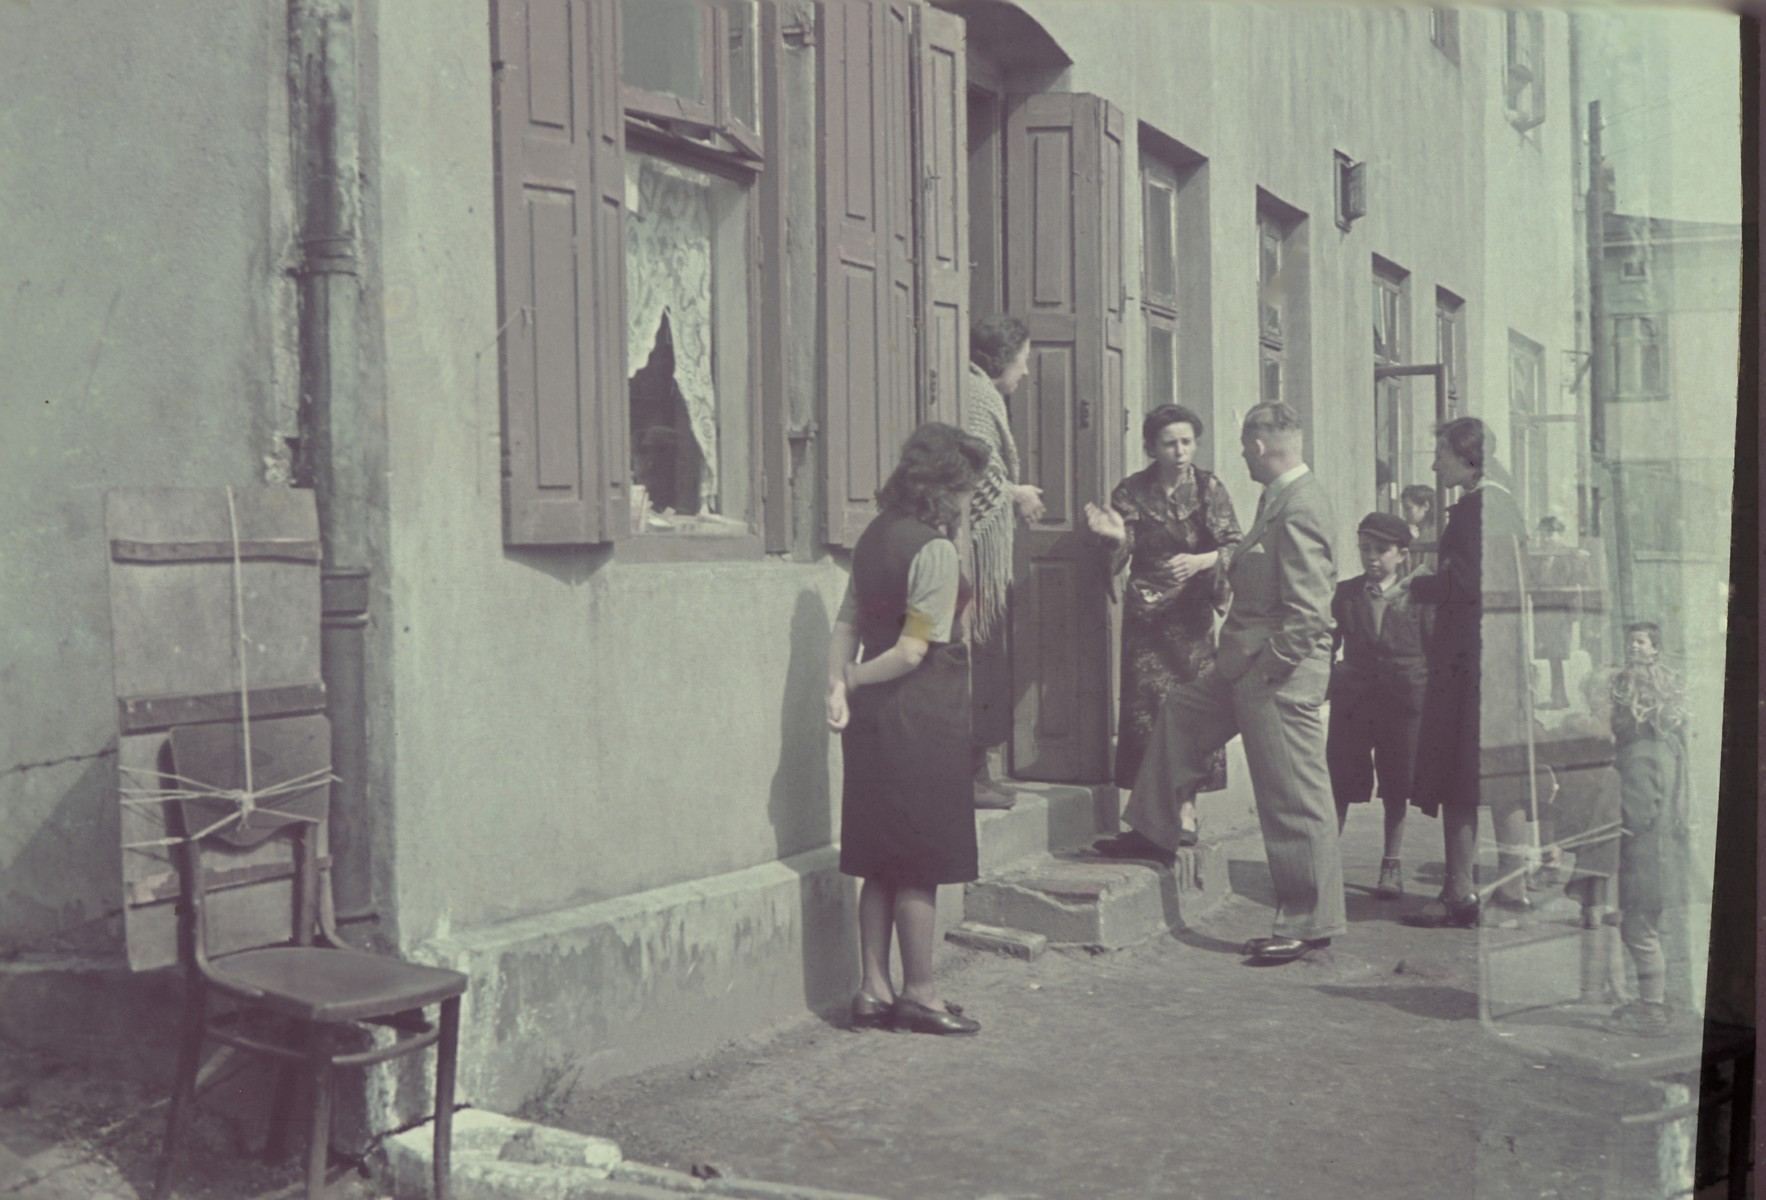 A German official [probably Biebow] talks to Jewish women in the doorway to their home in the Lodz ghetto.